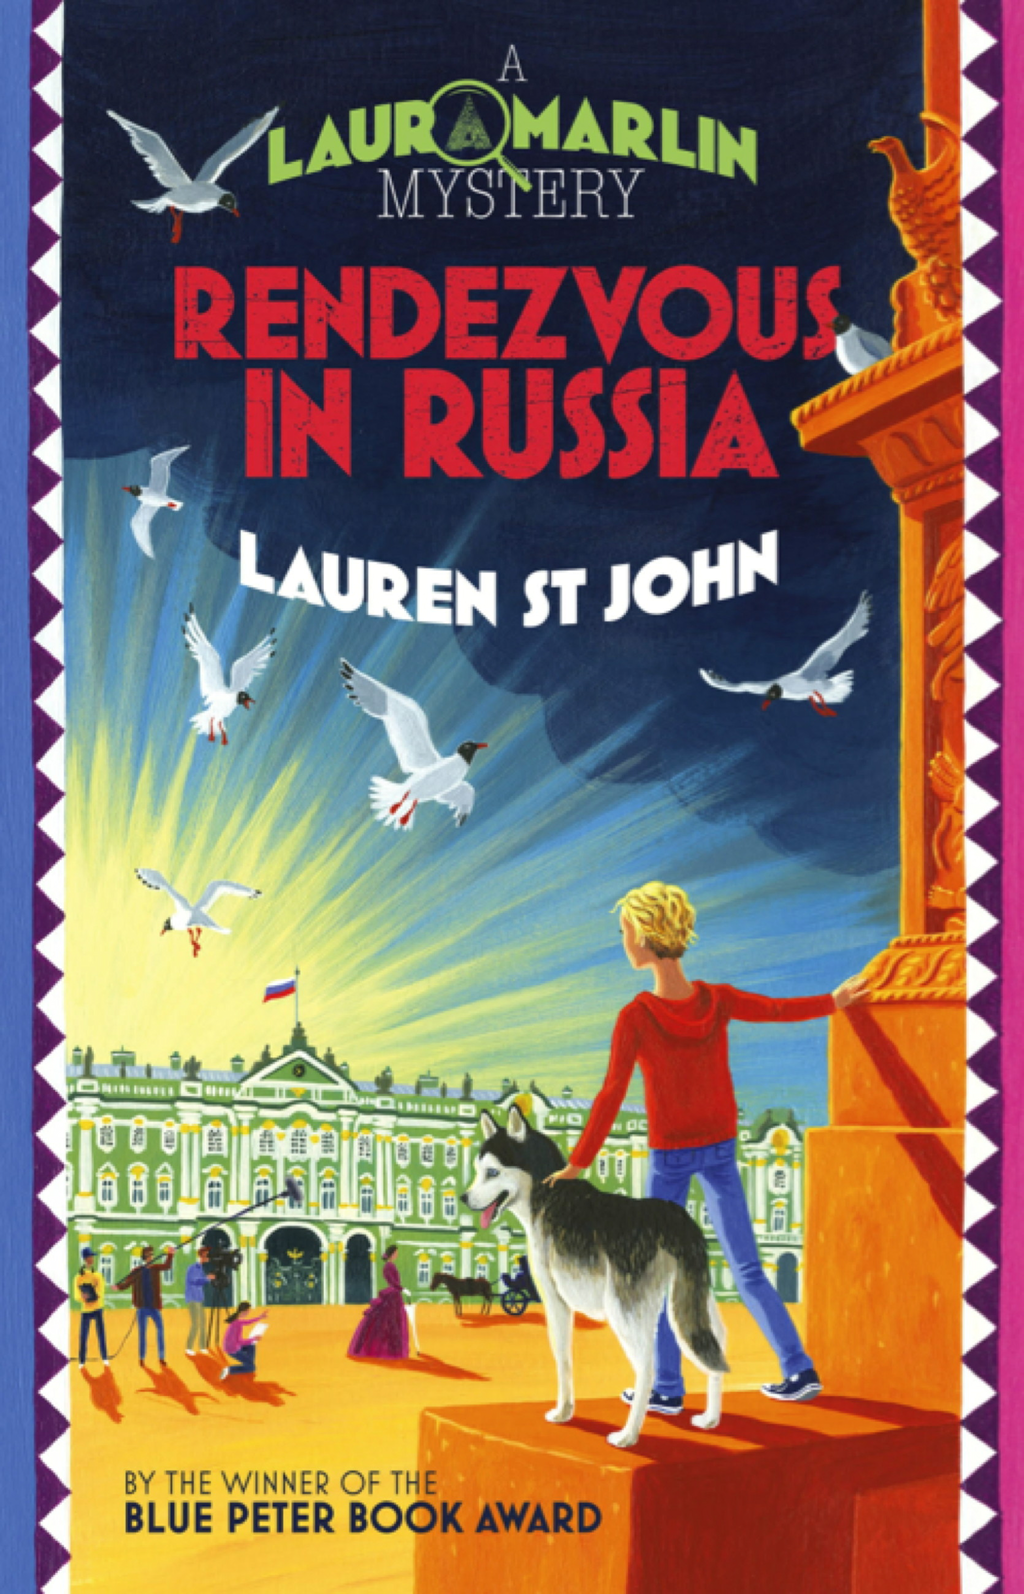 Laura Marlin Mysteries 4: Rendezvous in Russia